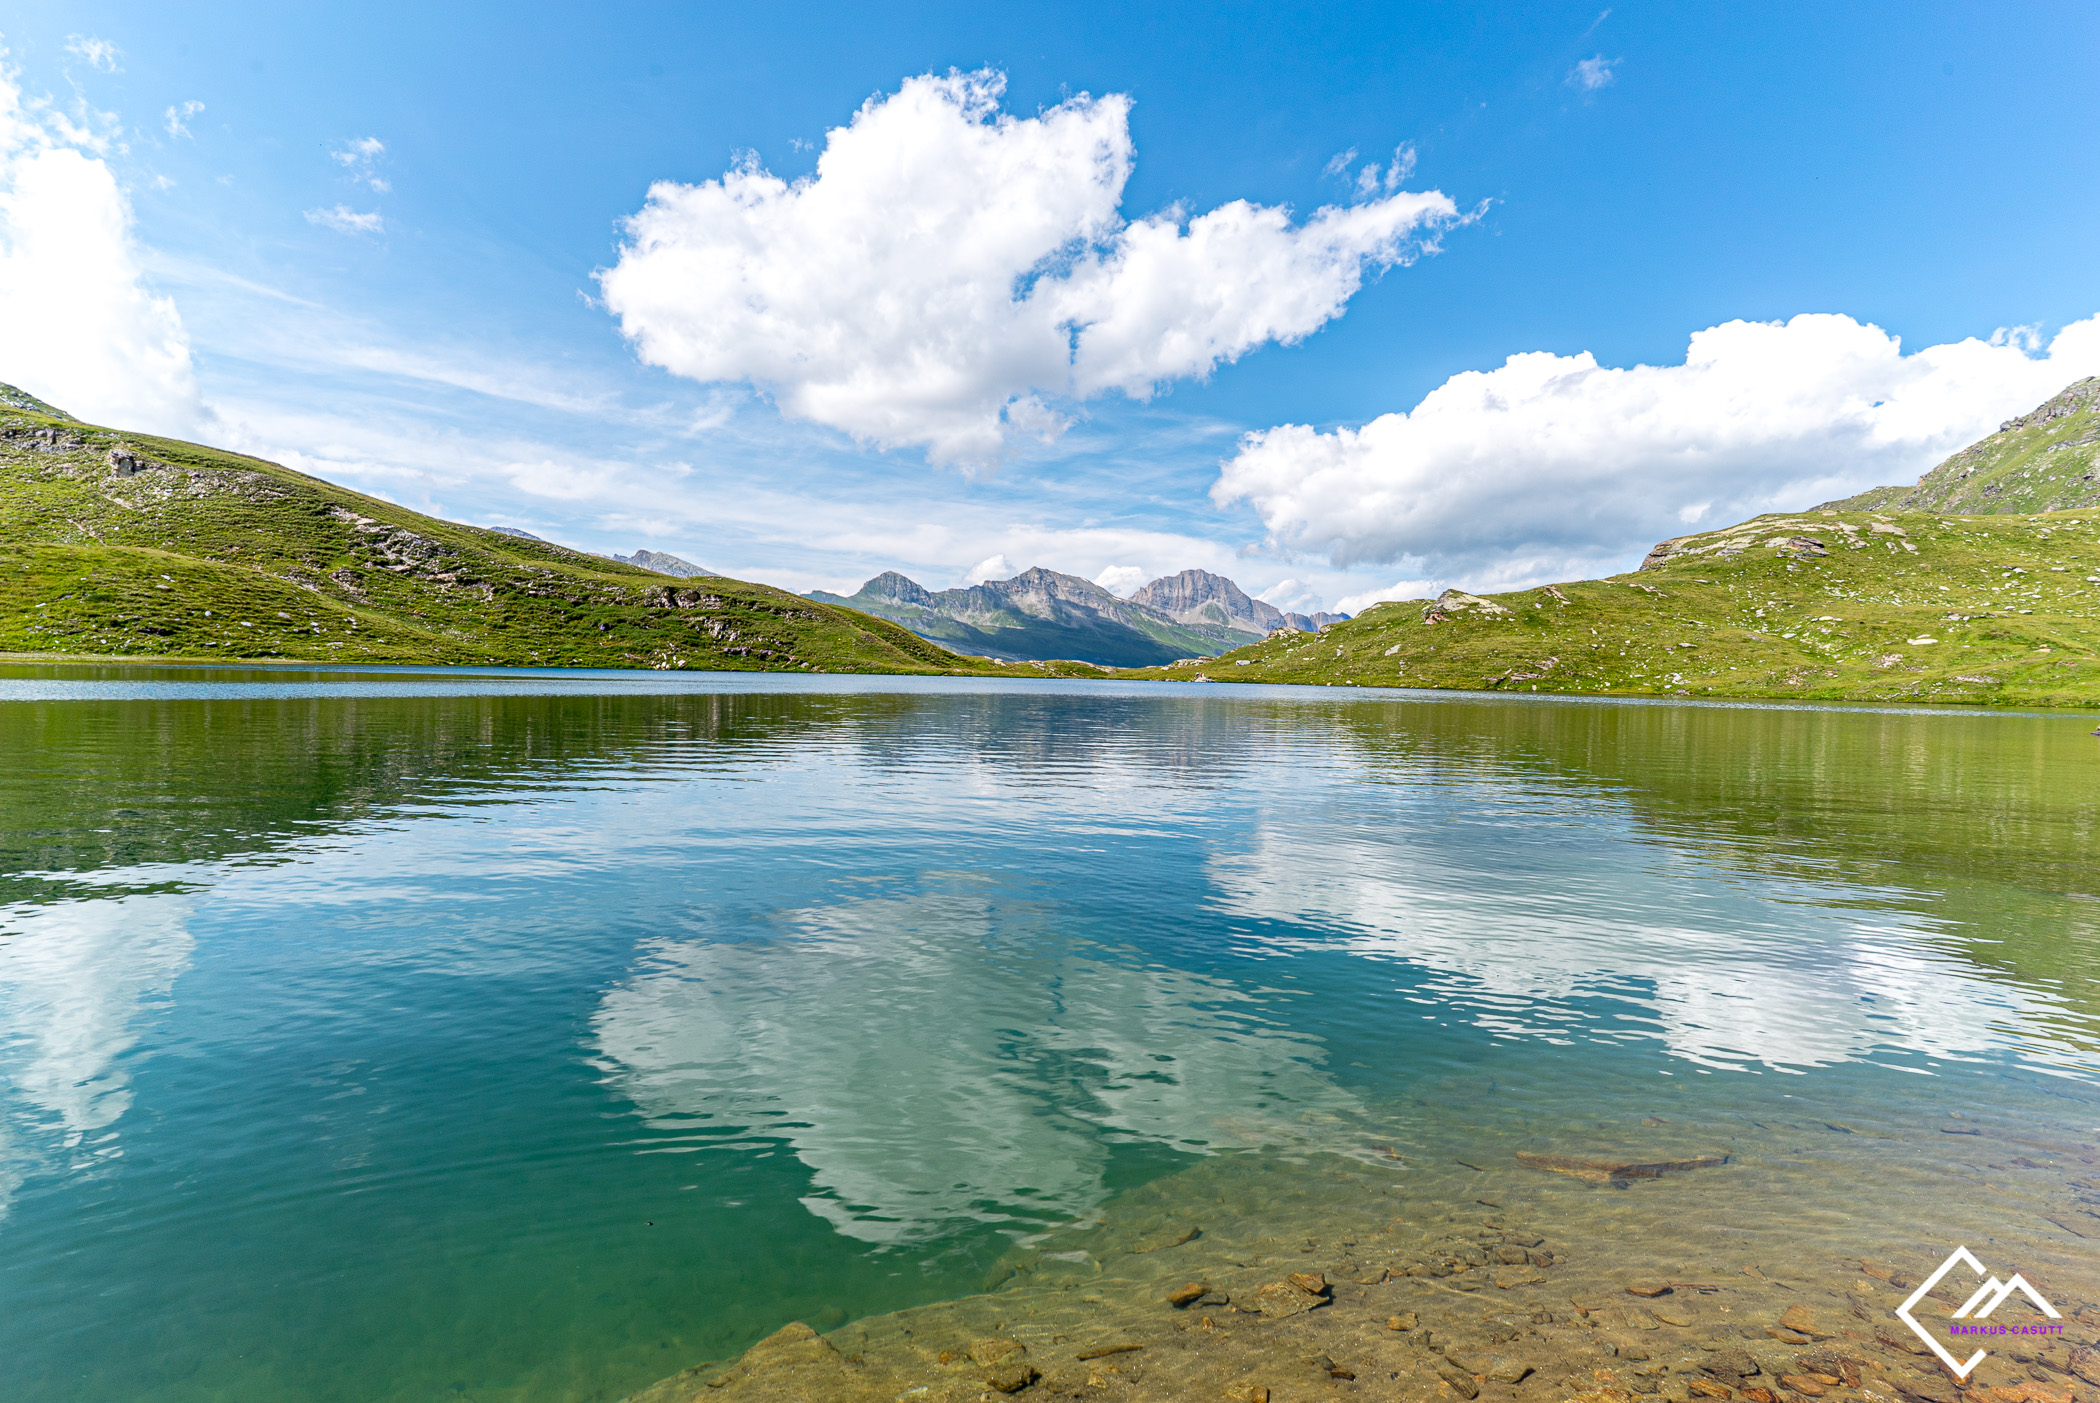 Guraletschsee_a7s_20160804_00010_040_web